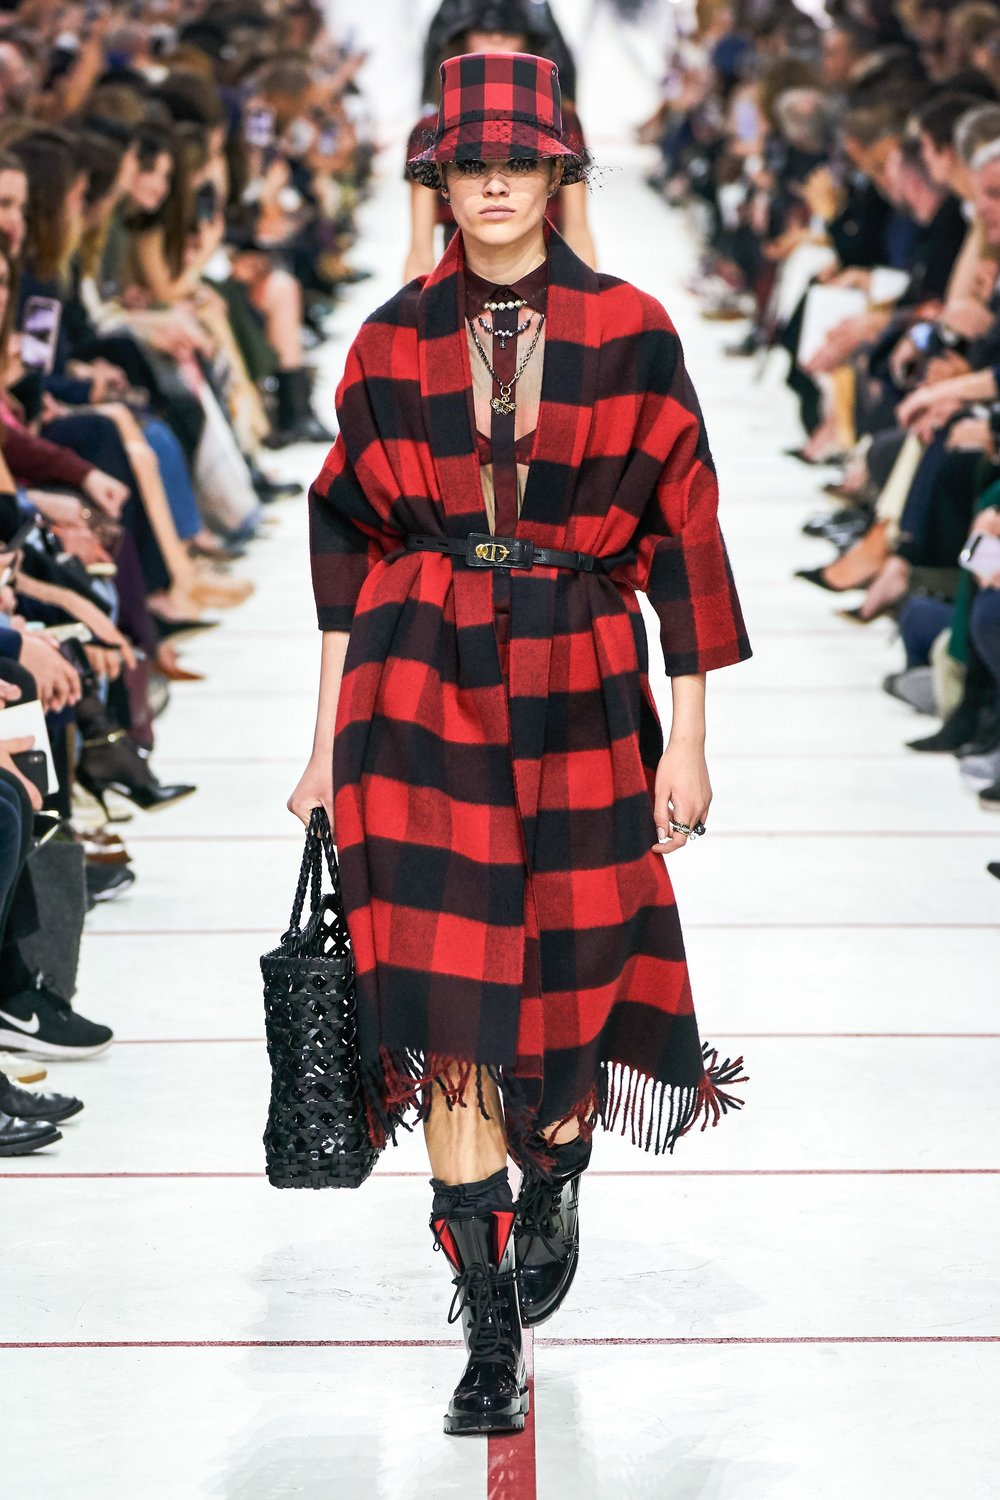 Red Check - Coats, jackets, skirts, shirts (also seen in yellow and green) - Christian Dior